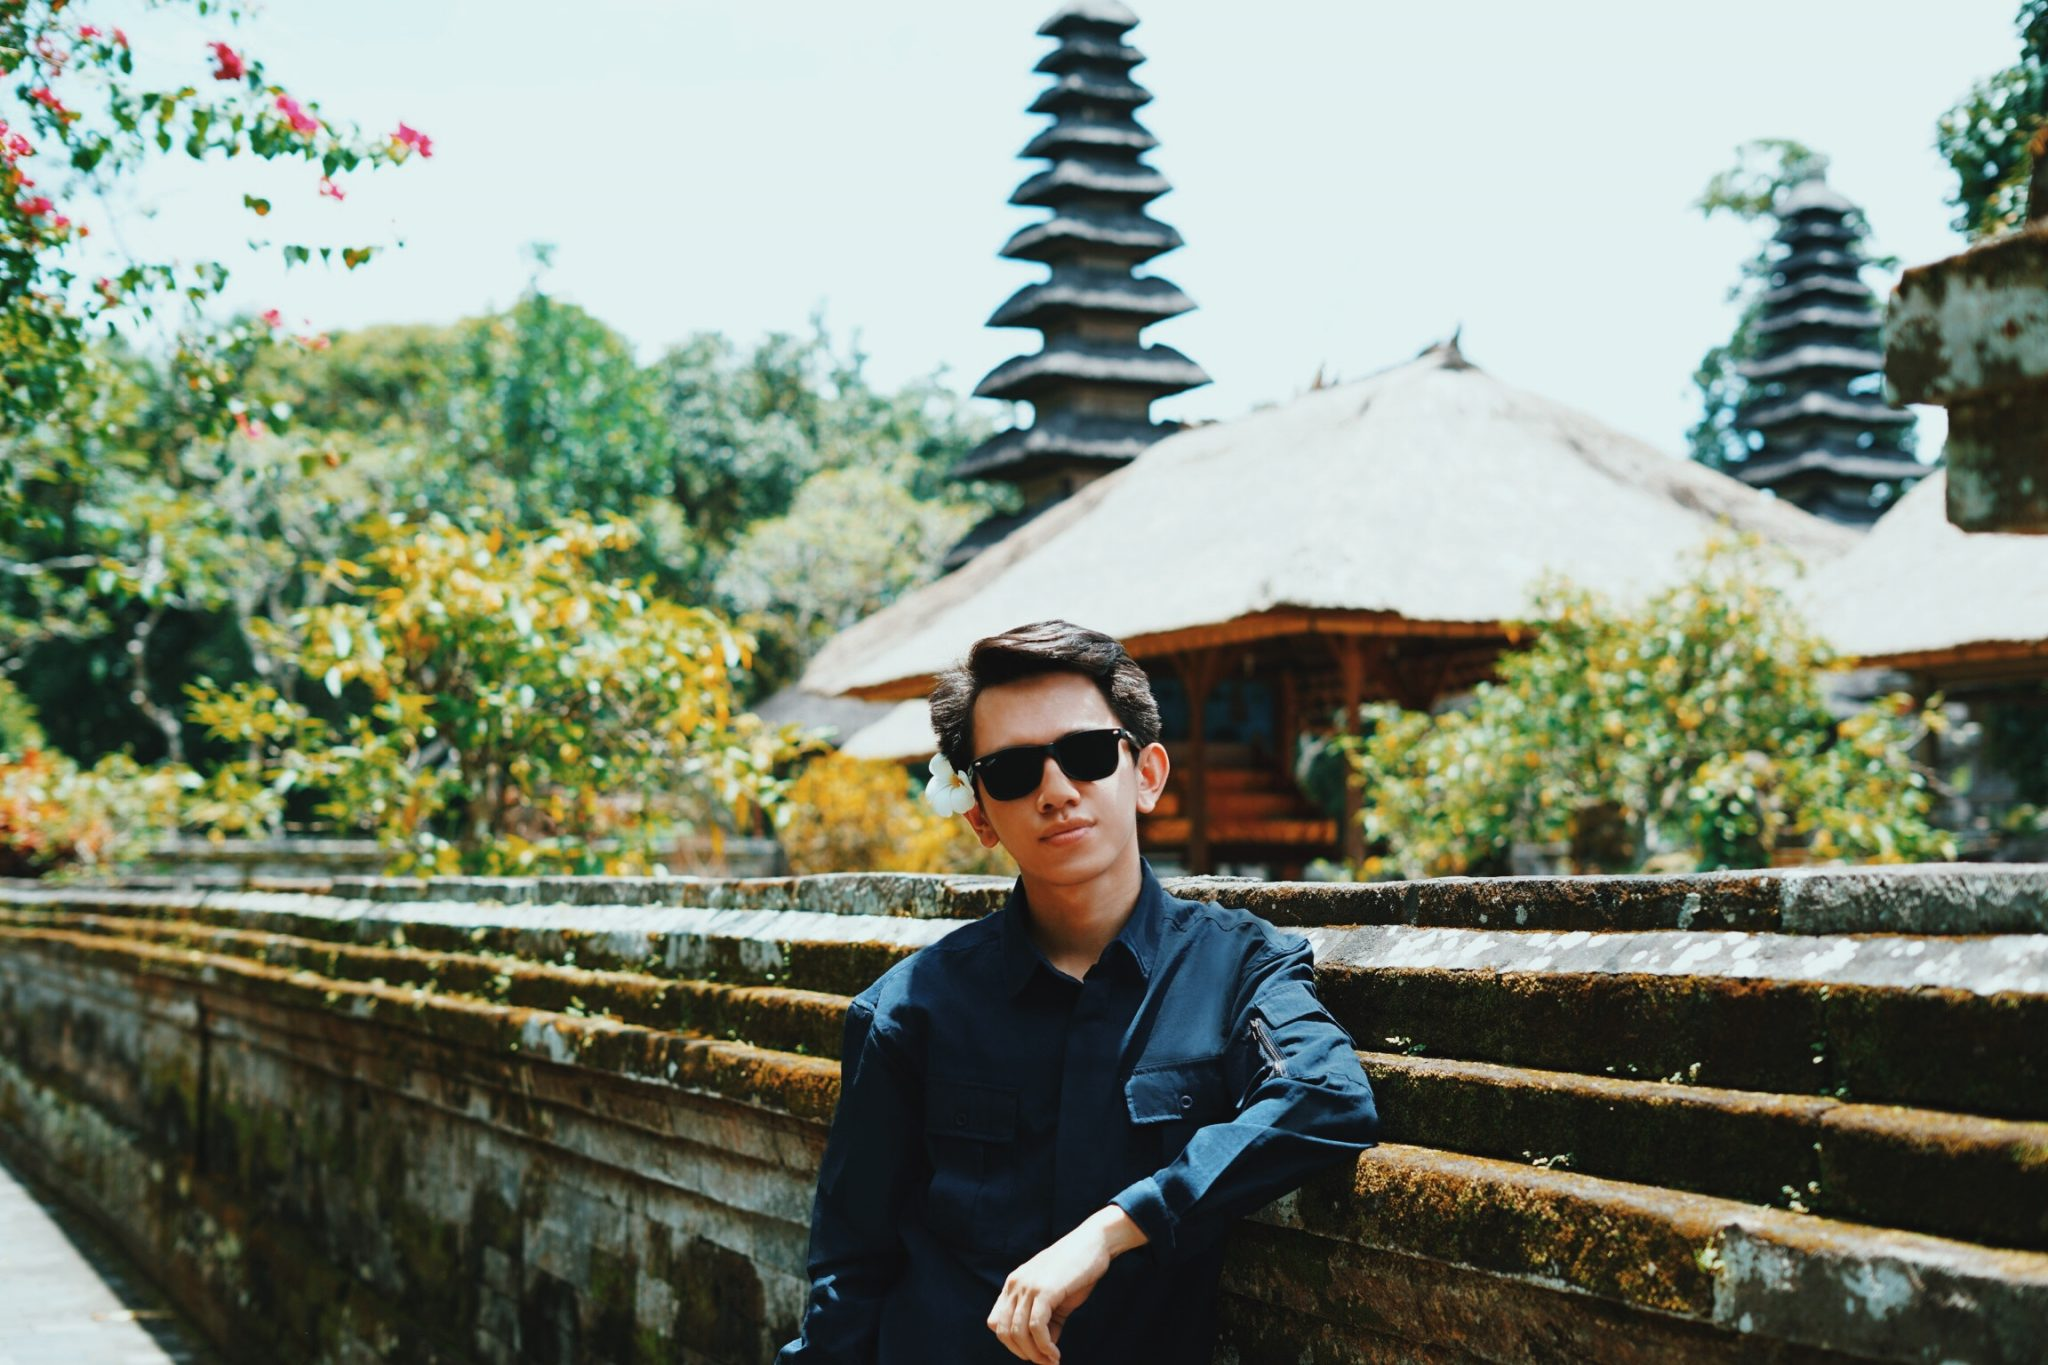 hendrawithjaya.com hendra wijaya indonesian fashion blogger indonesia pria travel in style